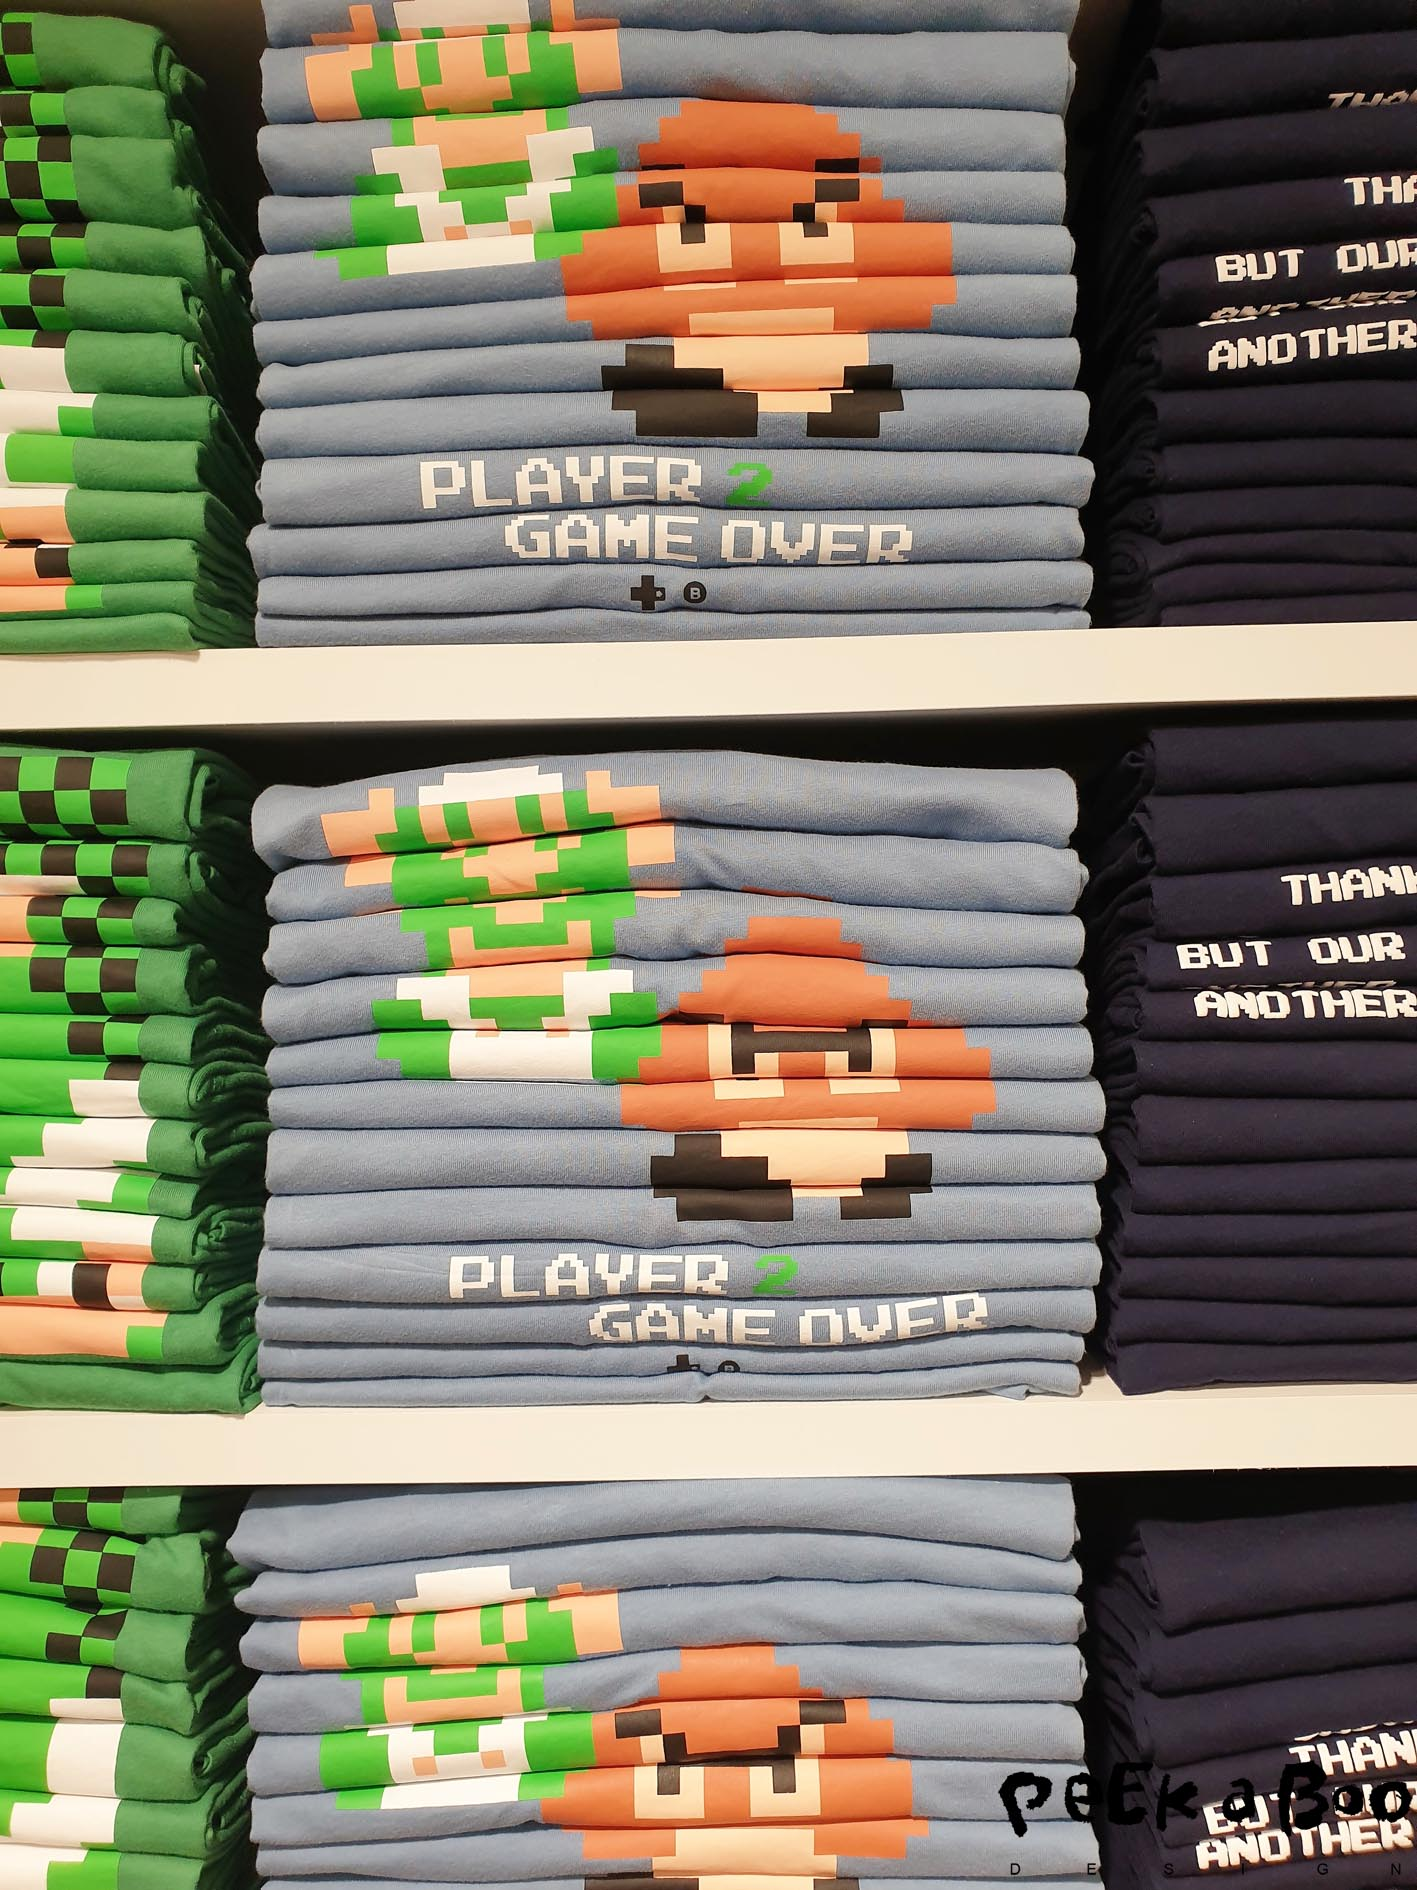 The japanese accuracy seen in the piles of printed teeshirts